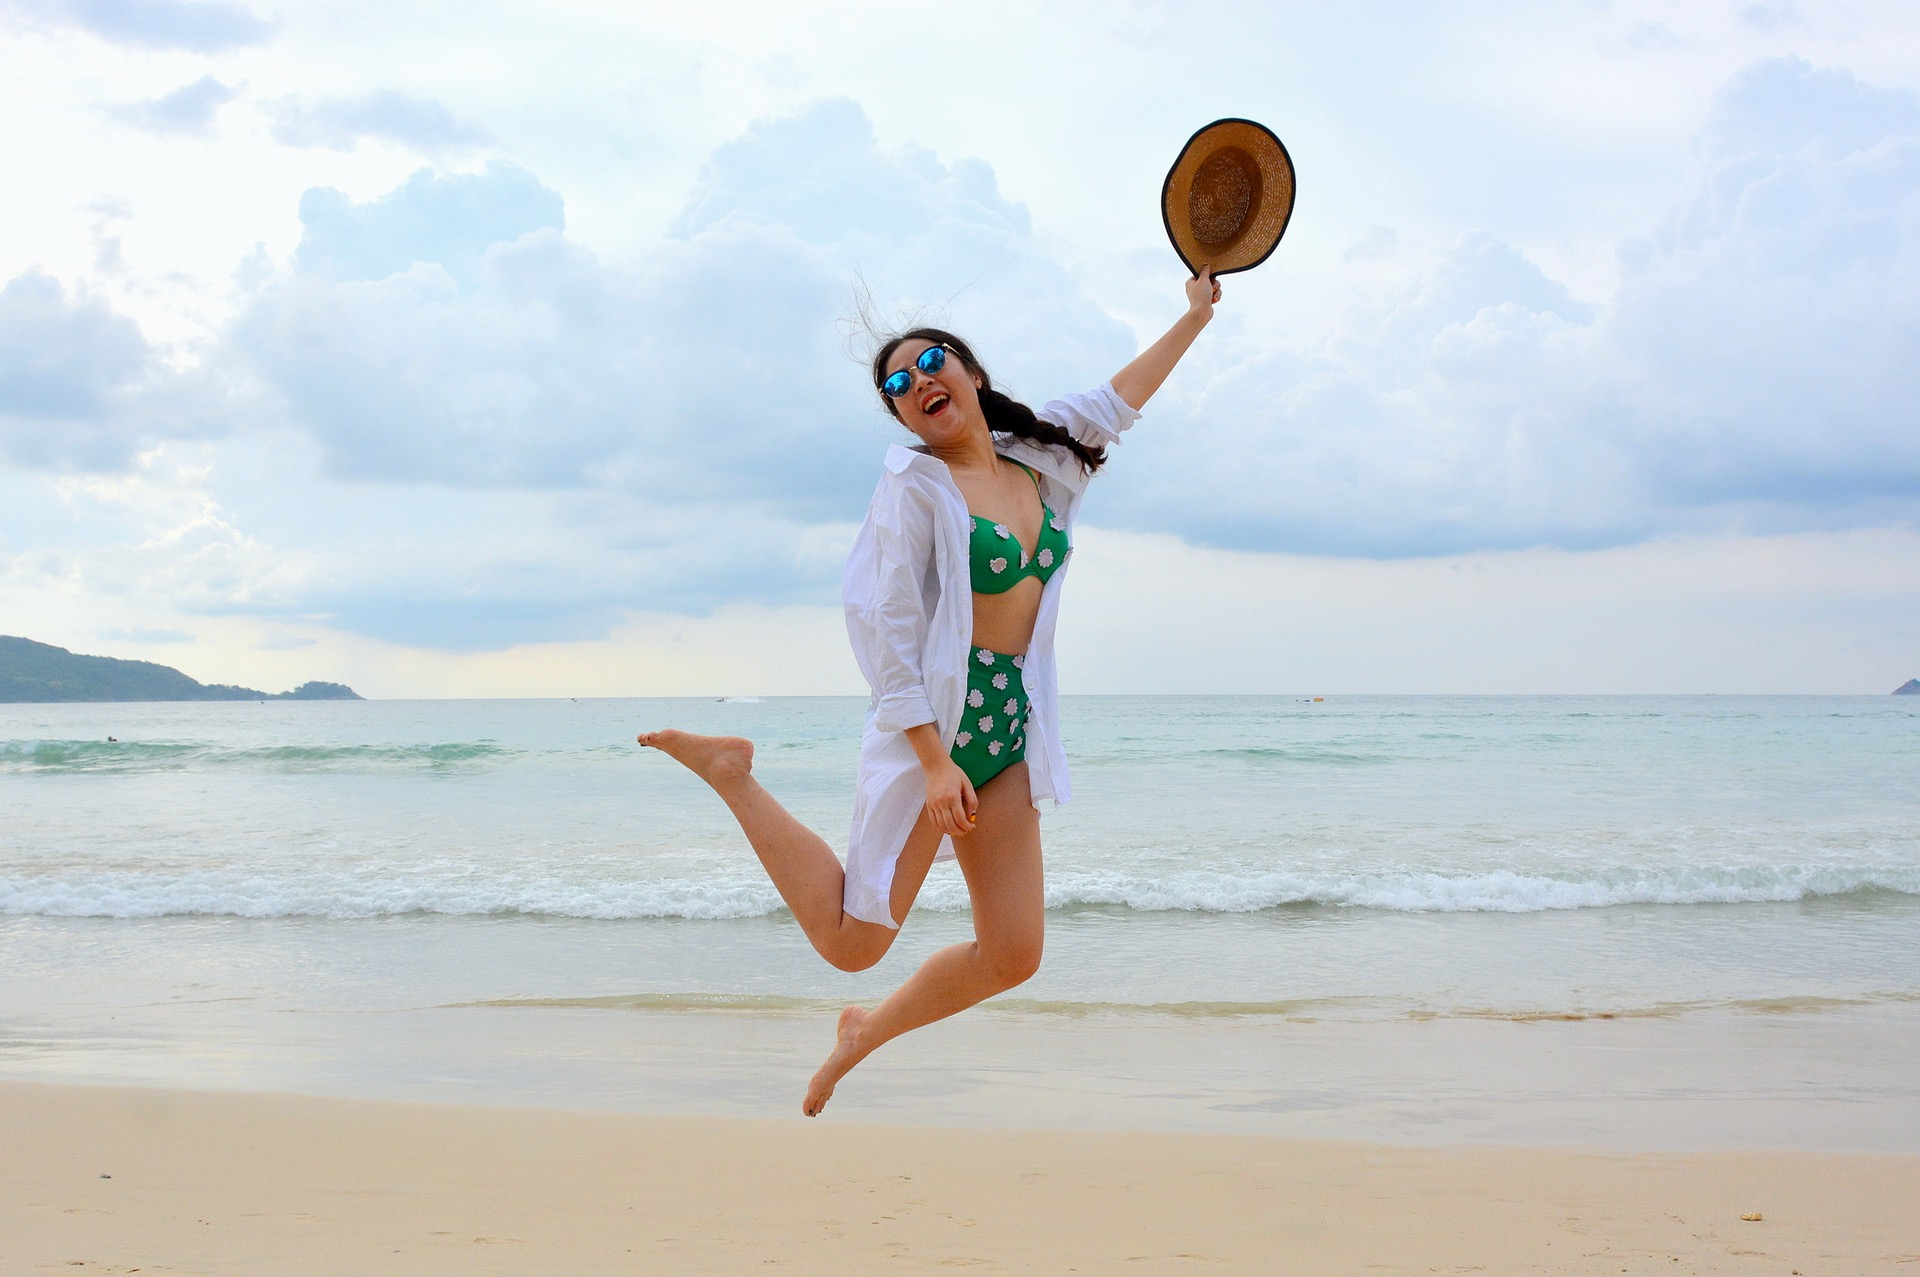 Woman Jumping On Beach.jpeg